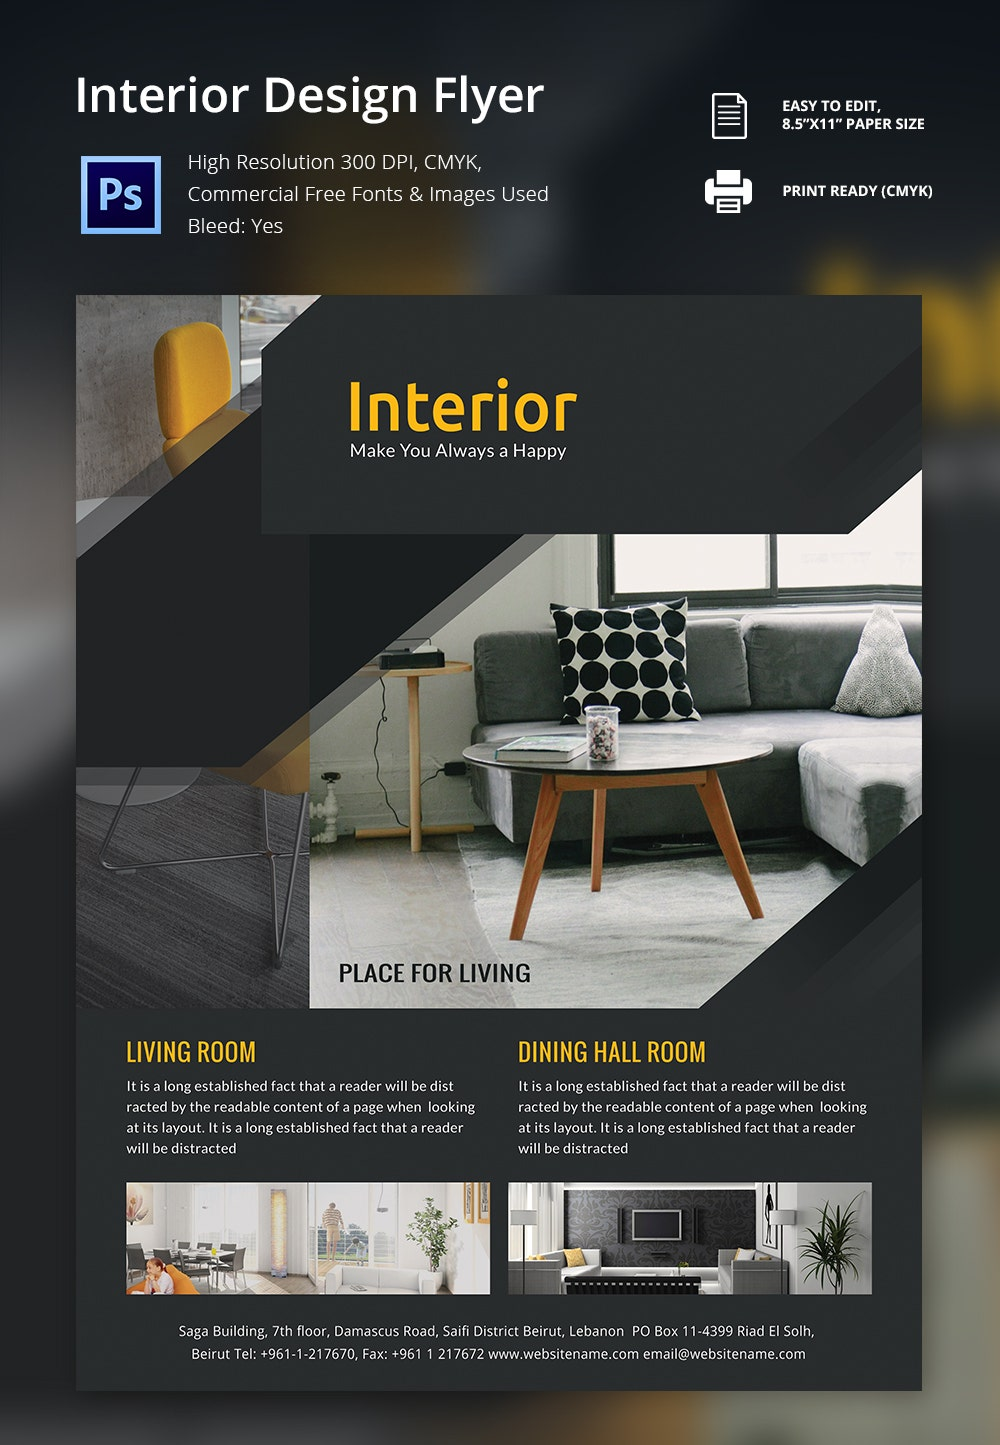 Interior design brochure 25 free psd eps indesign - Business name for interior design company ...